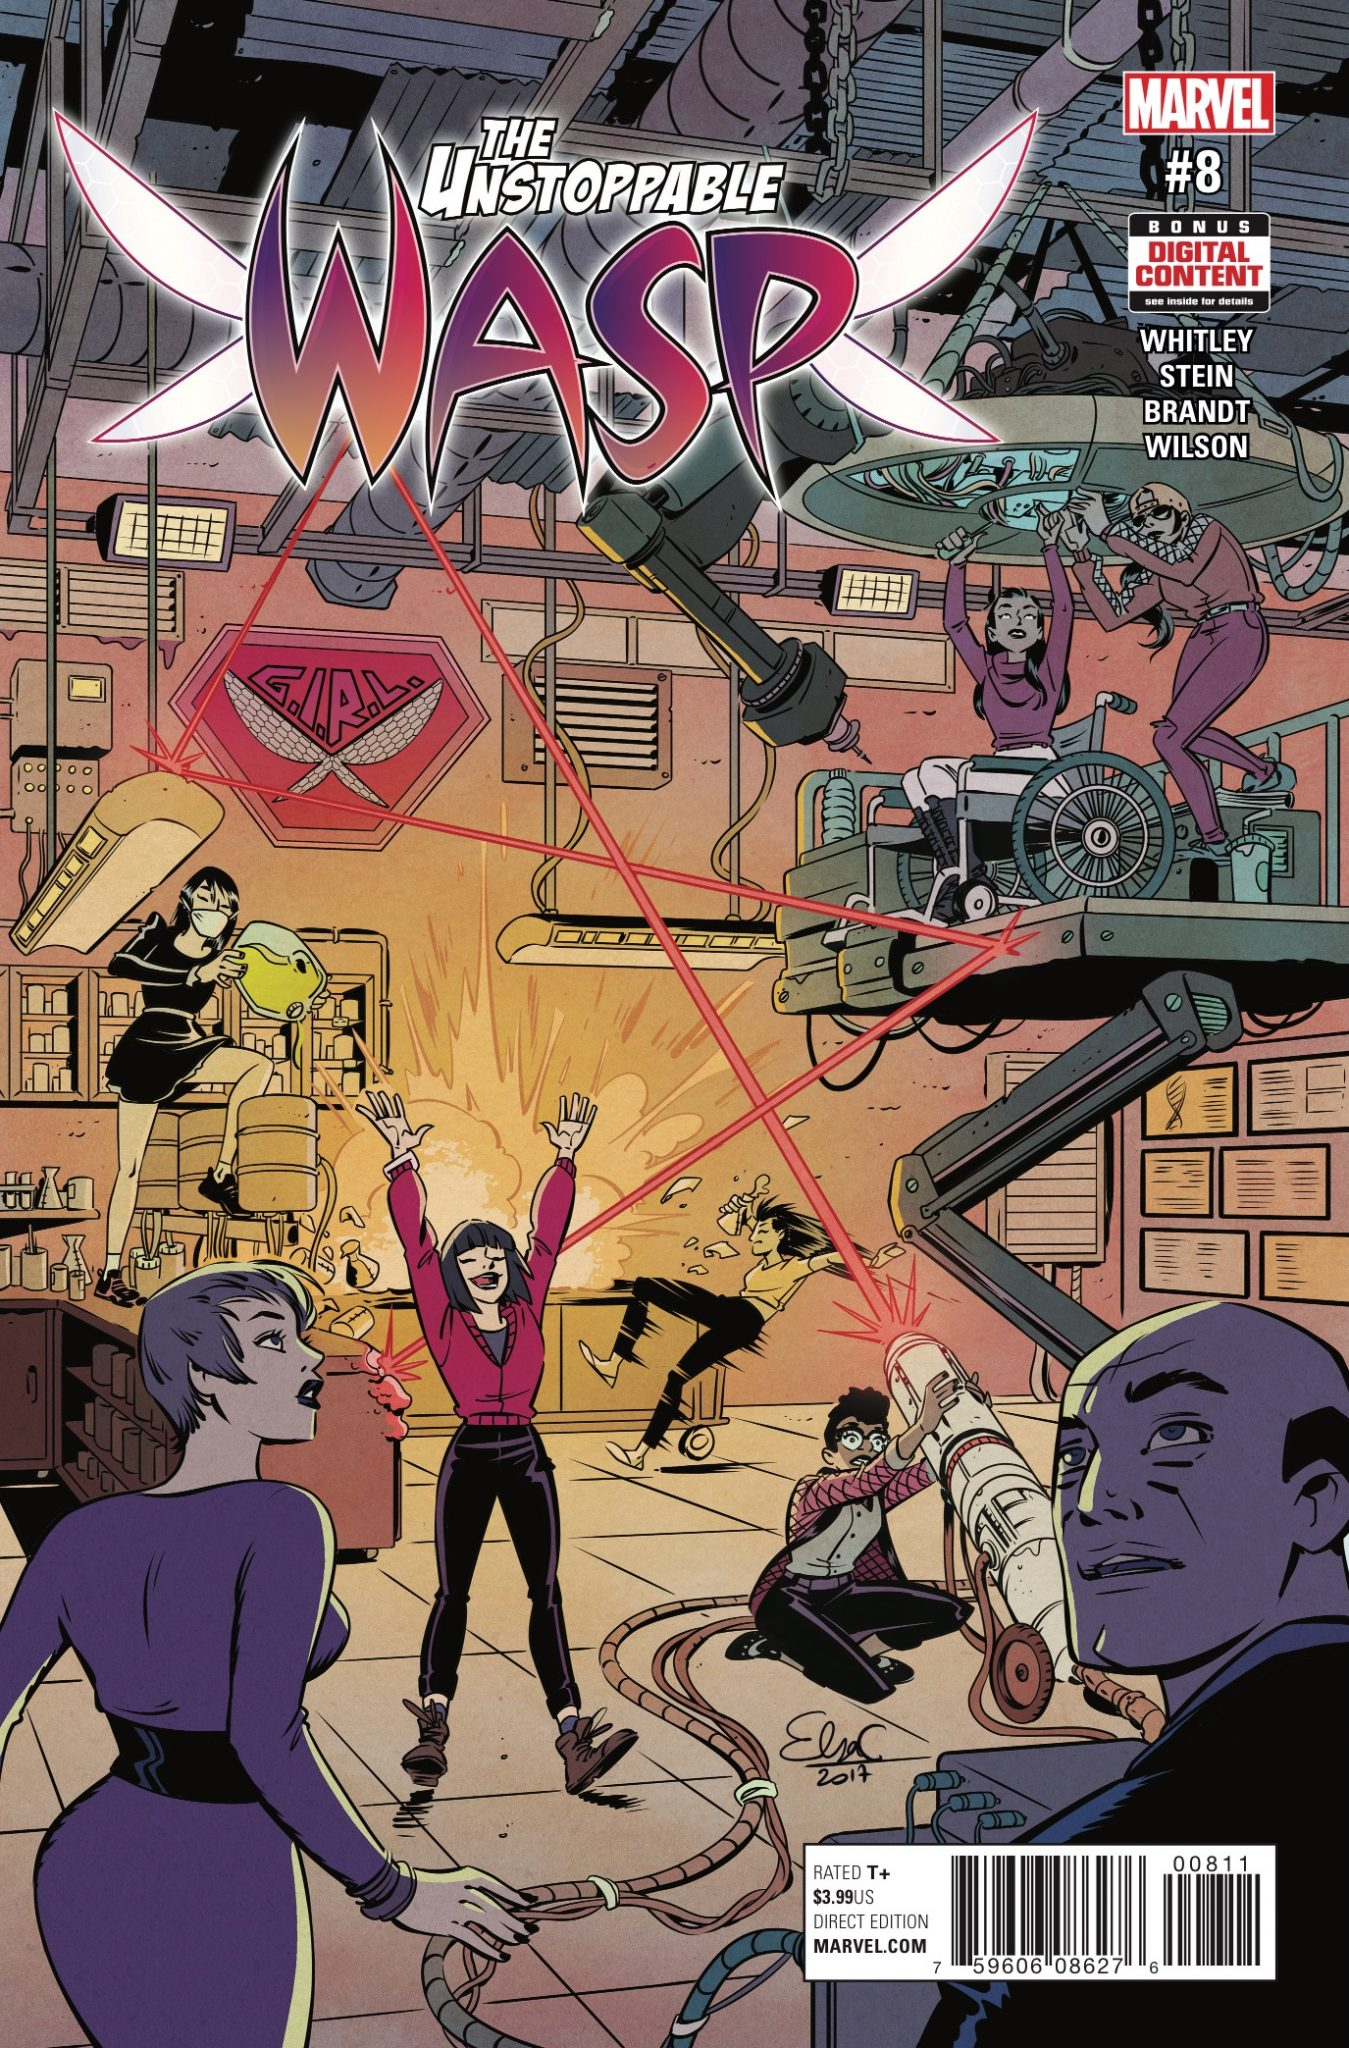 The Unstoppable Wasp #8 Review